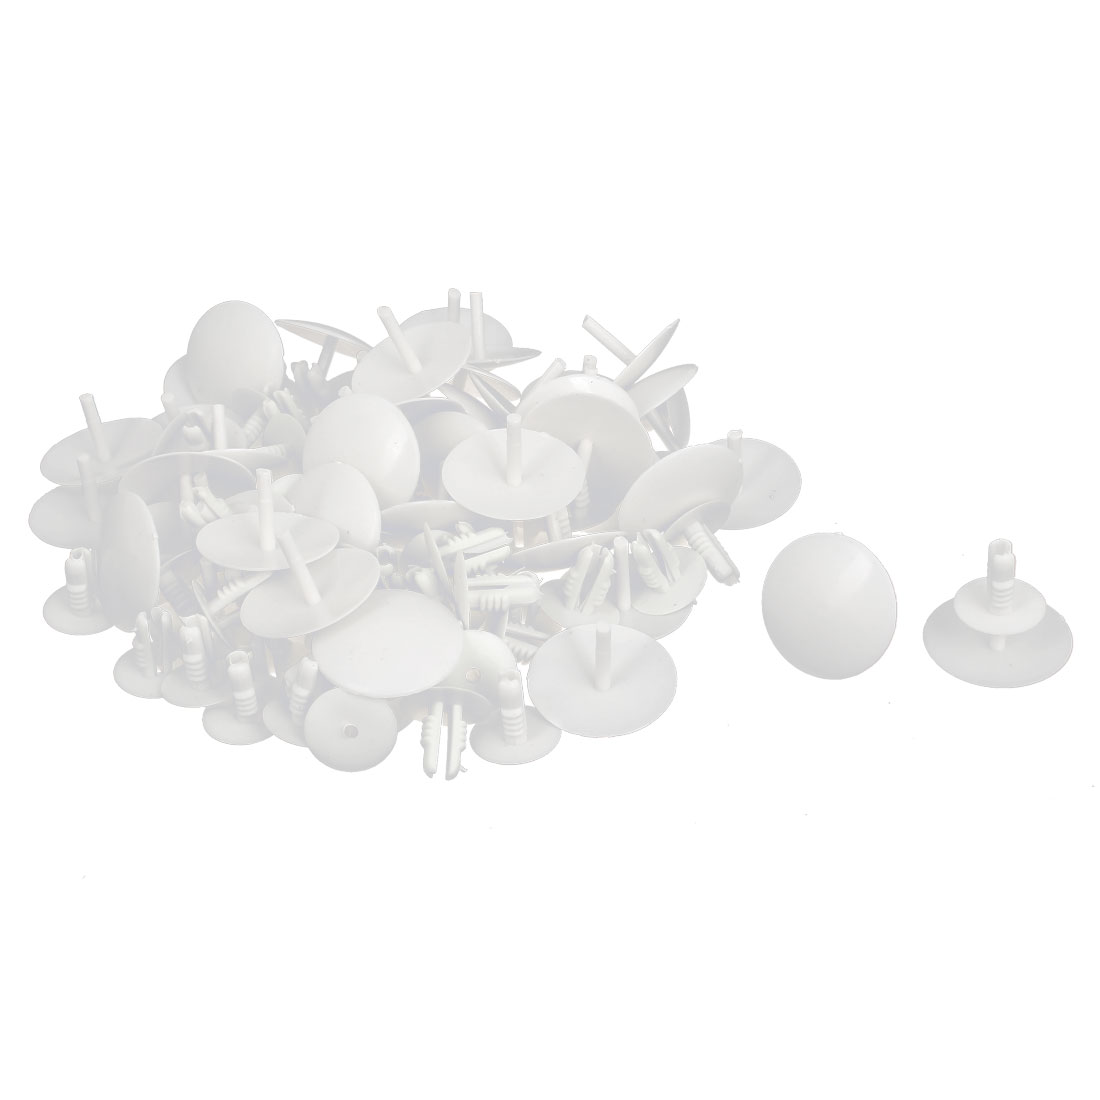 50 Pcs White Plastic Rivet Trim Fastener Moulding Clips 8mm x 14mm x 30mm